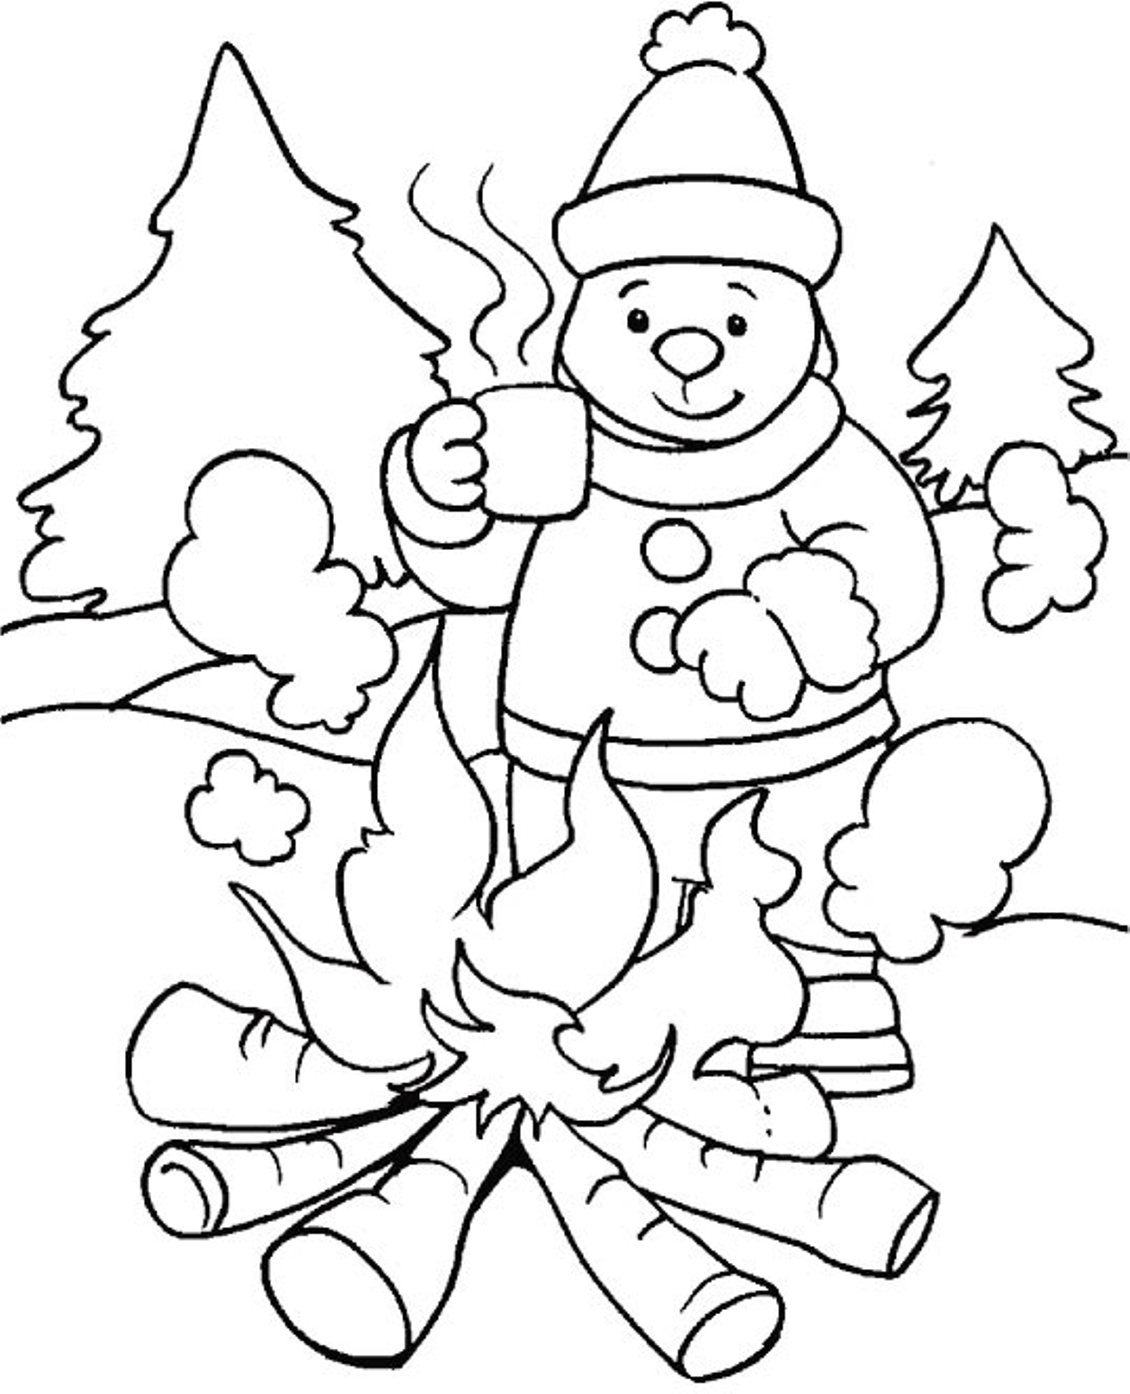 animals in winter coloring pages divine printable pictures of animals sergio website pages in coloring winter animals